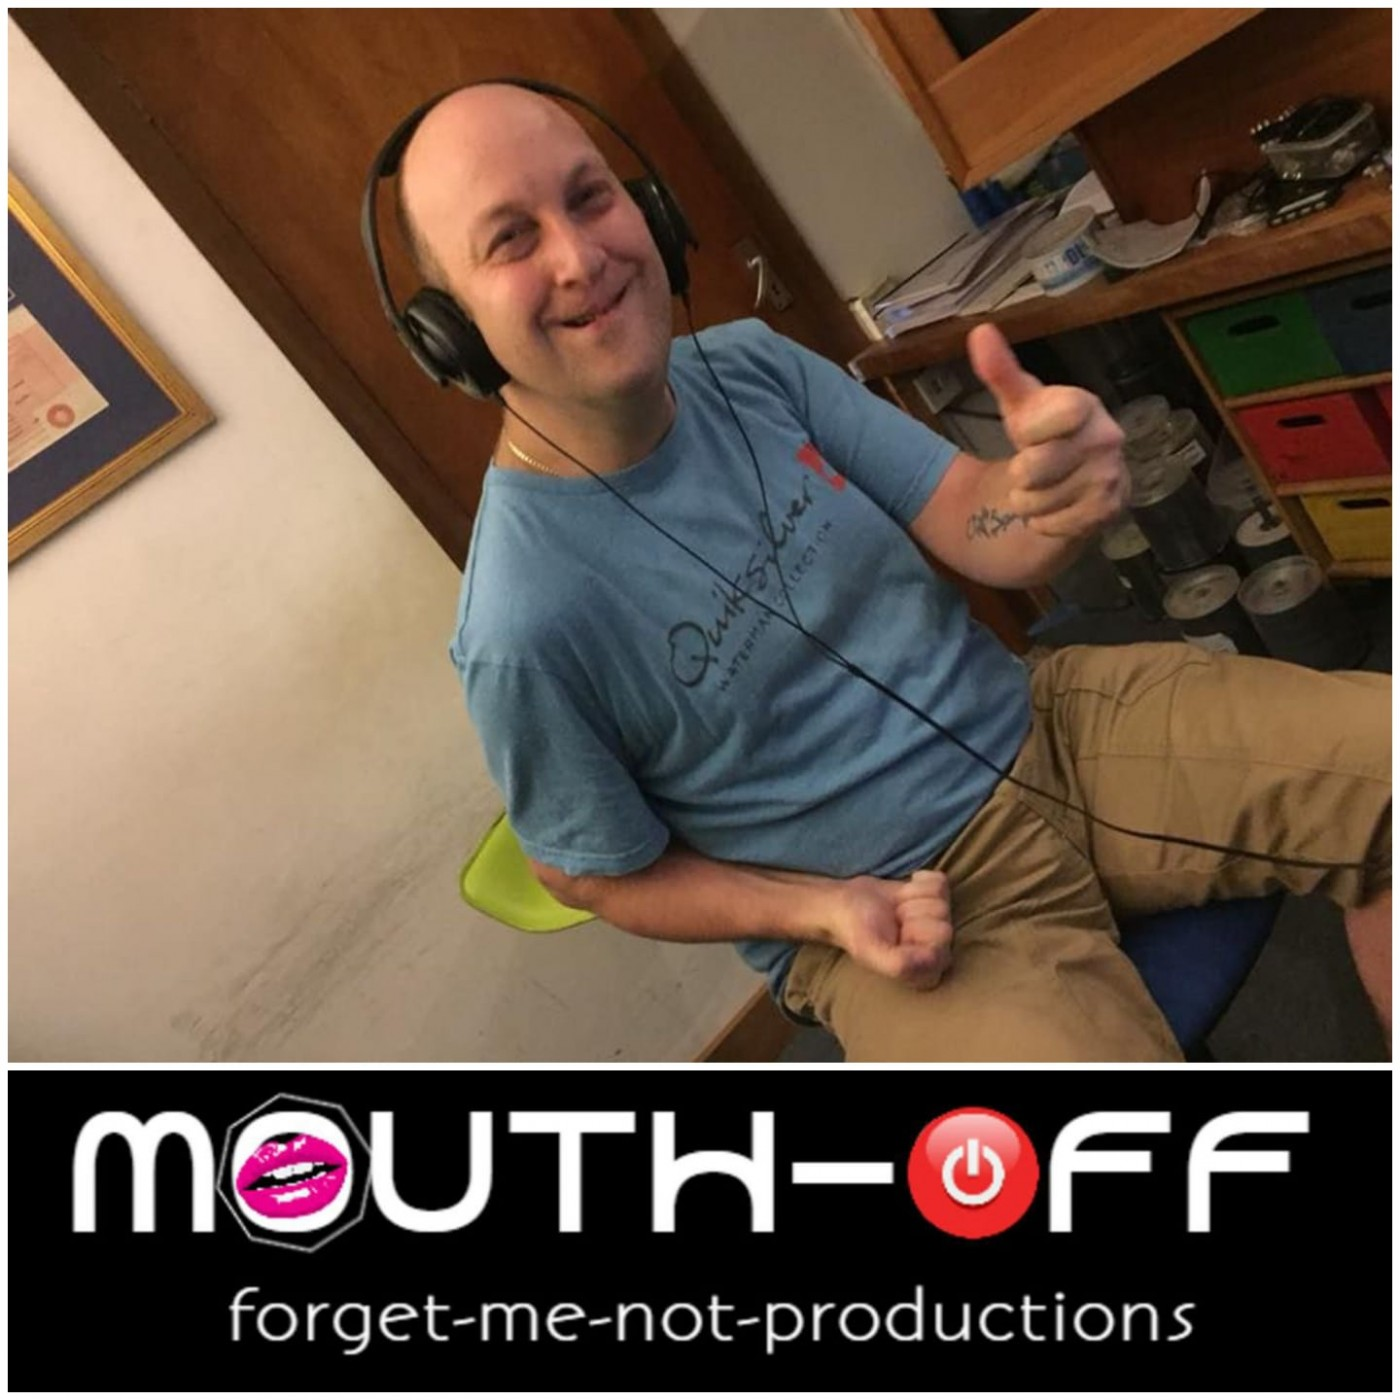 Mouth-Off episode 16: Technology; help or hindrance?